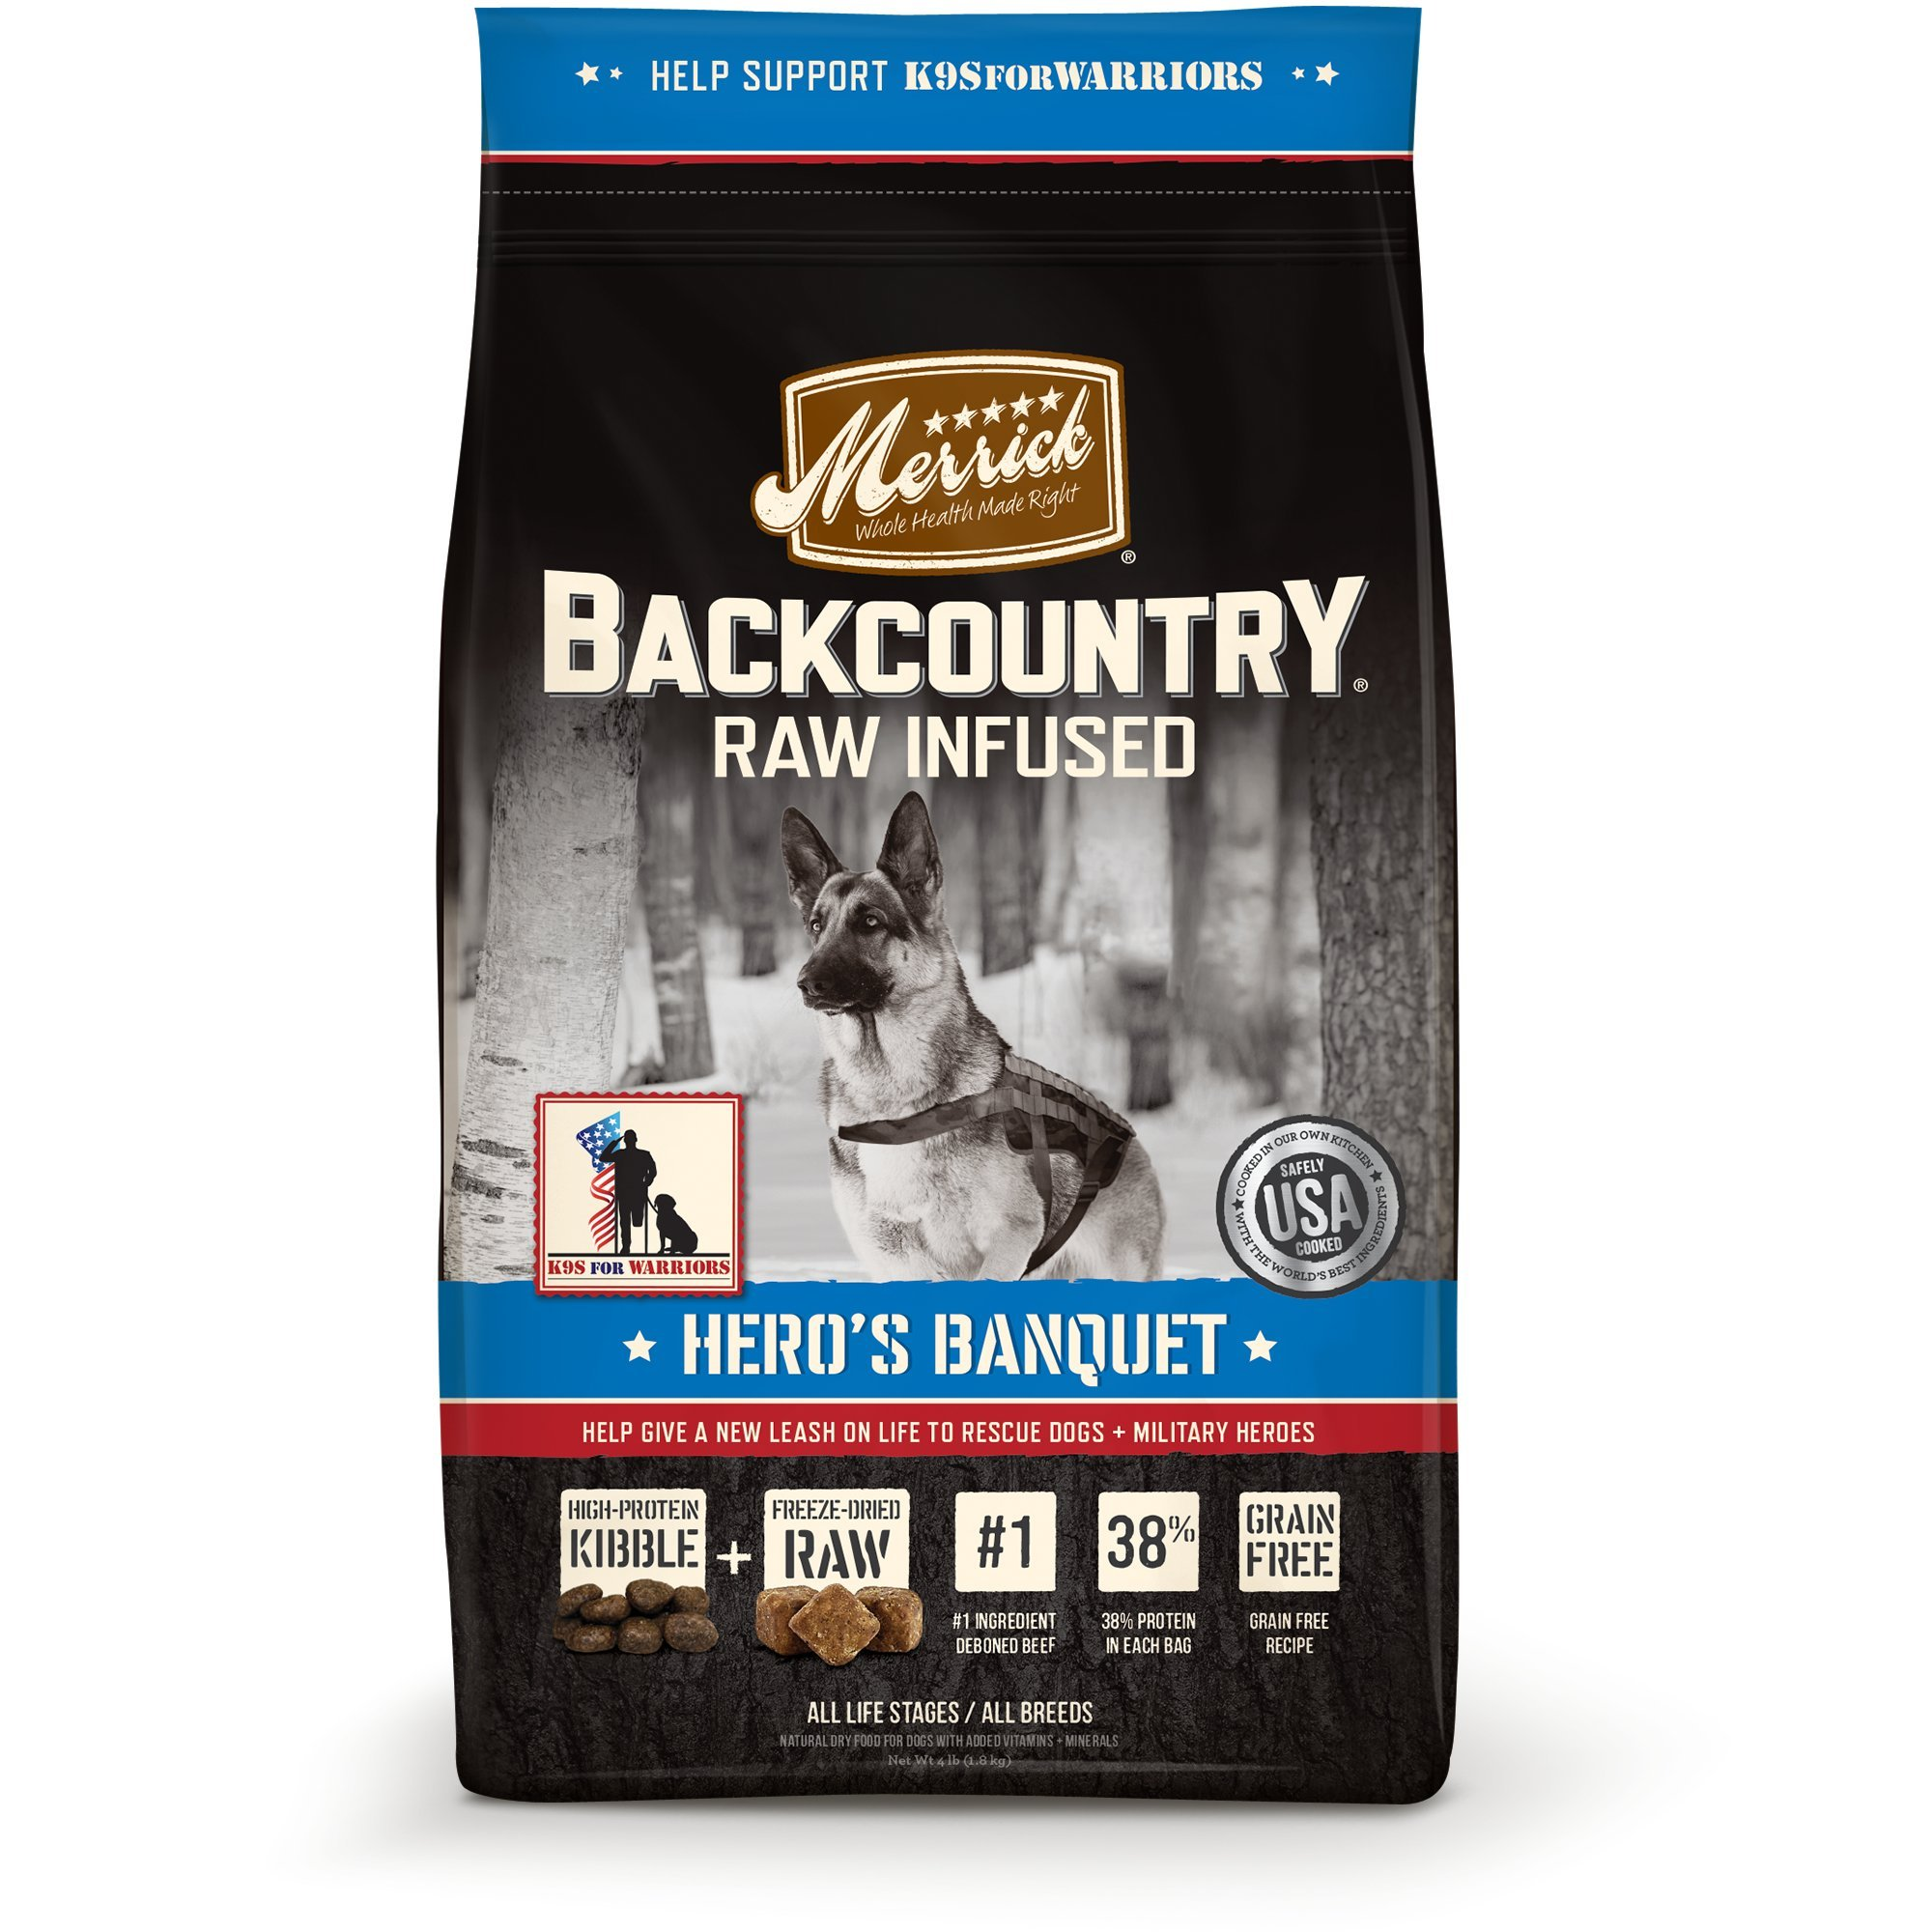 Merrick Backcountry Grain Free Hero'S Banquet Dry Dog Food, 22 Lbs. by Merrick (Image #1)